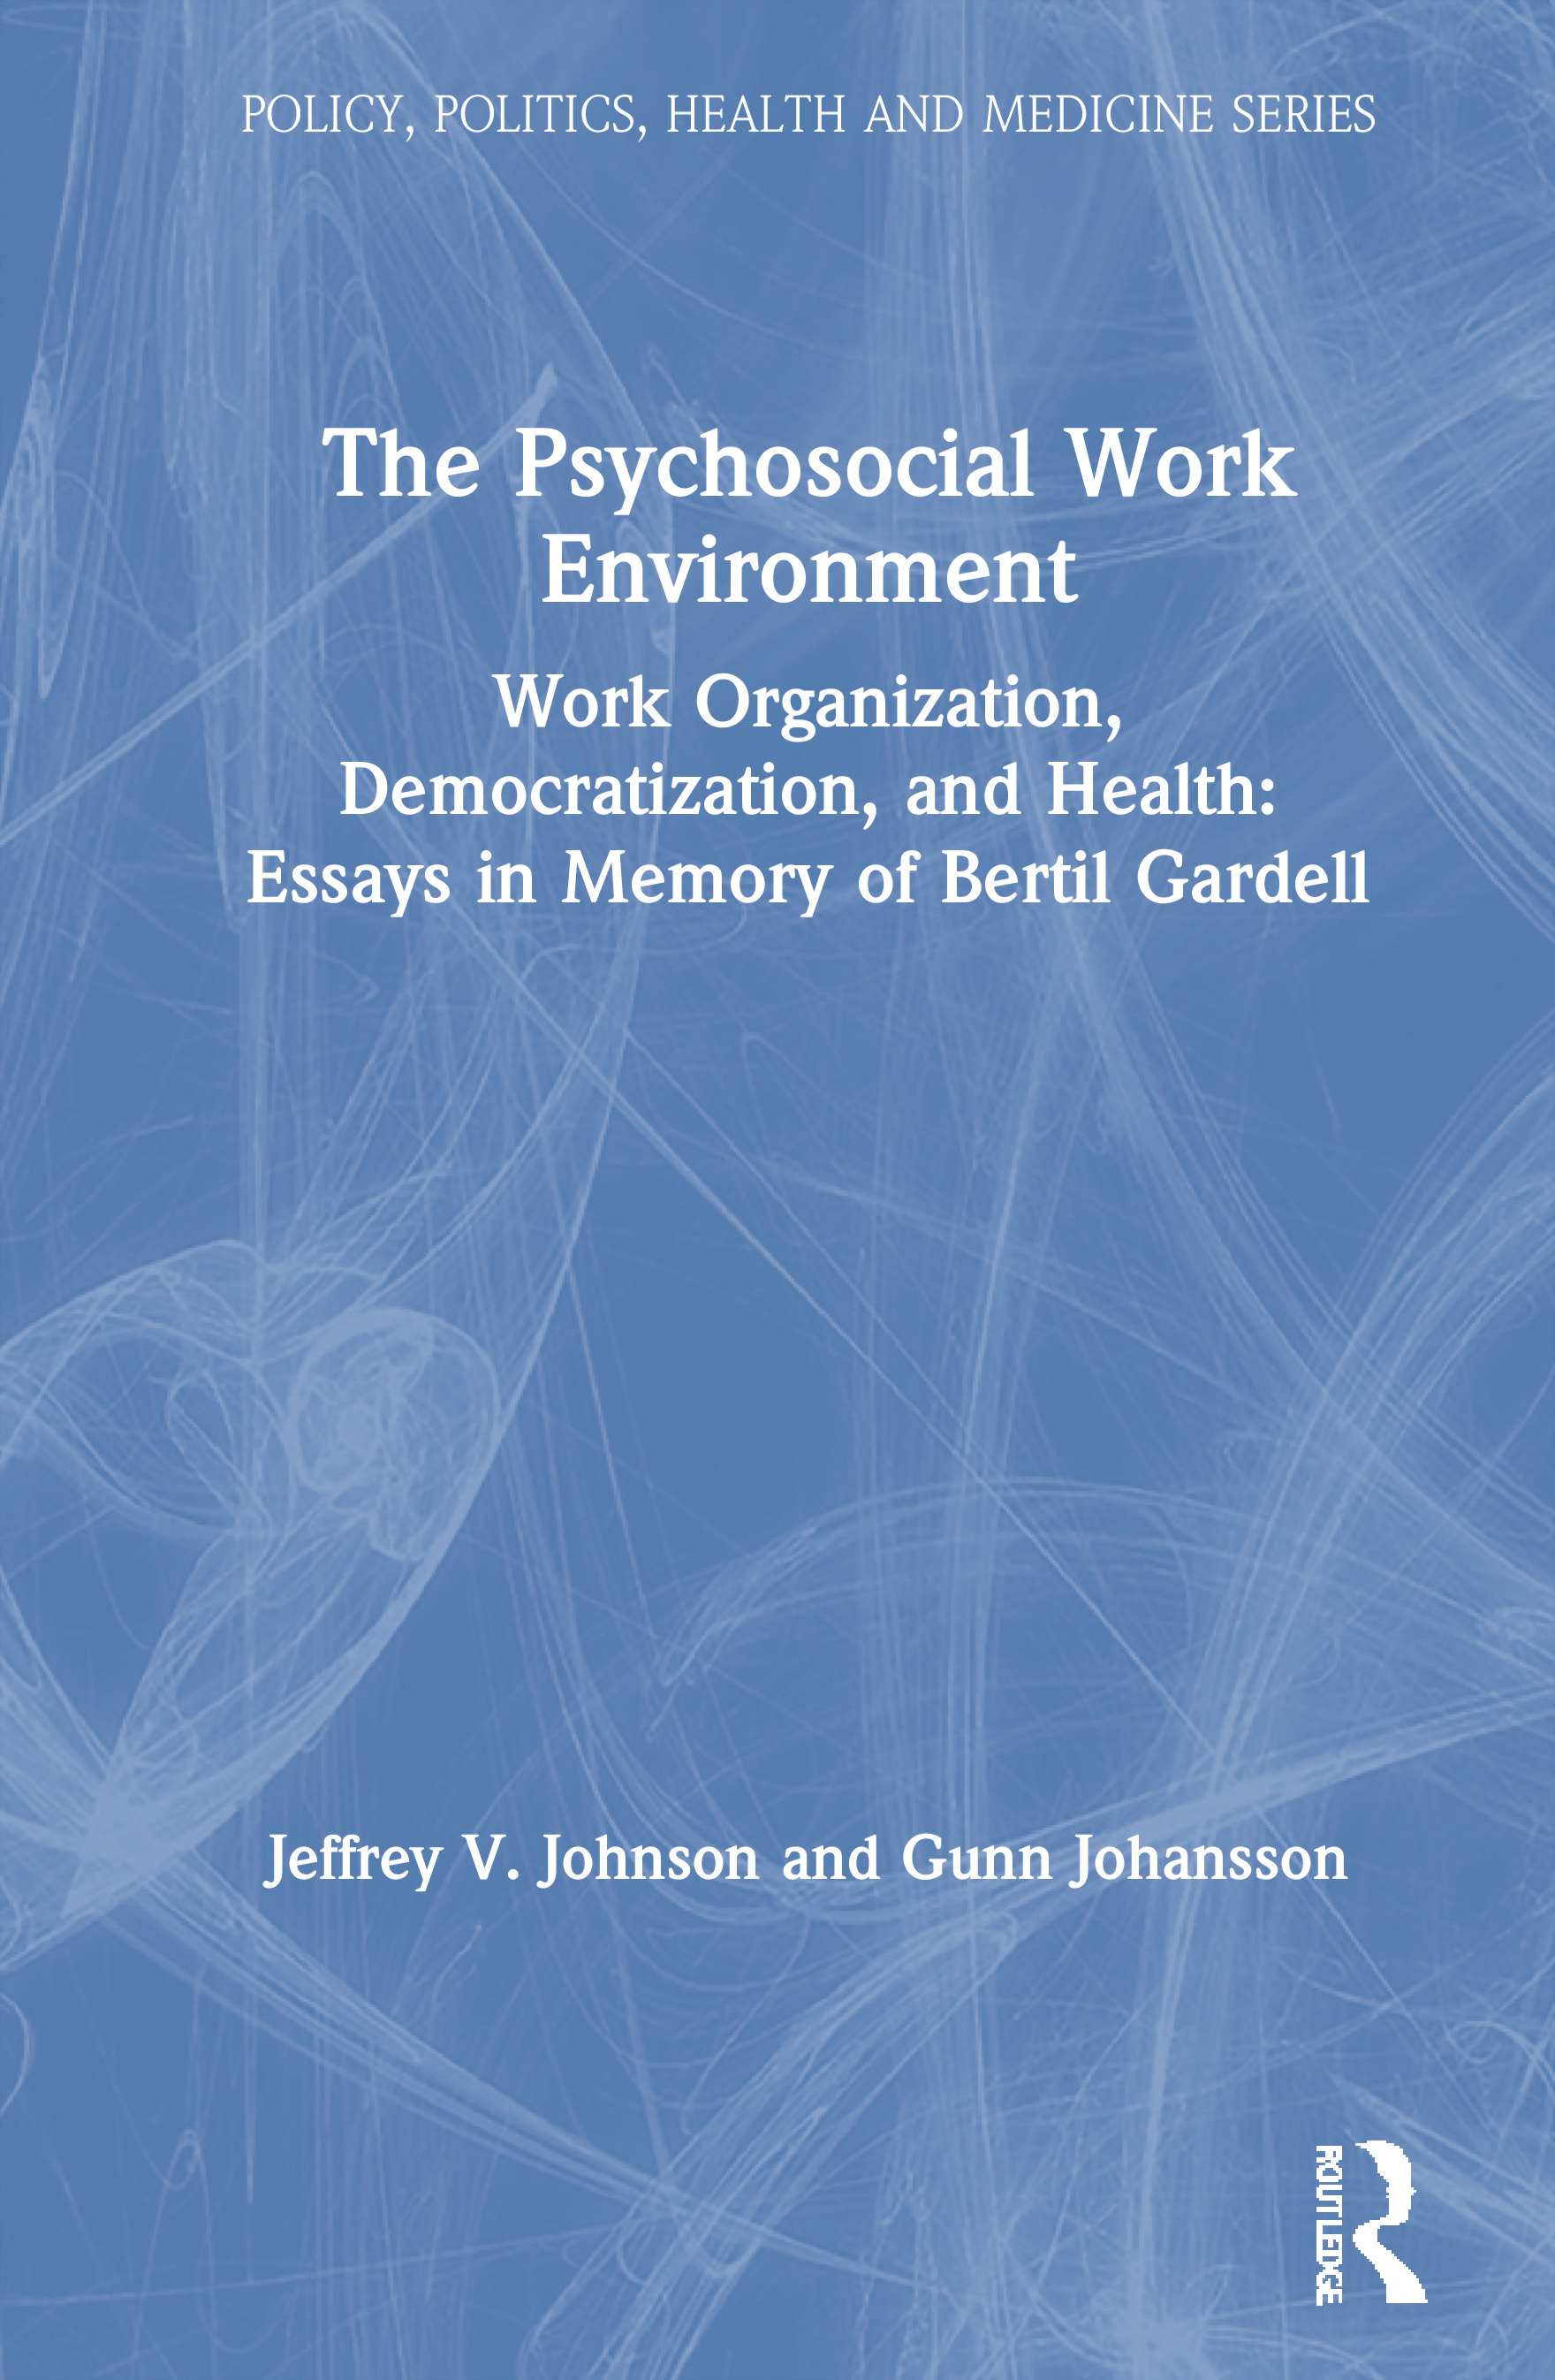 Action Research on Occupational Stress: Involving Workers as Researchers